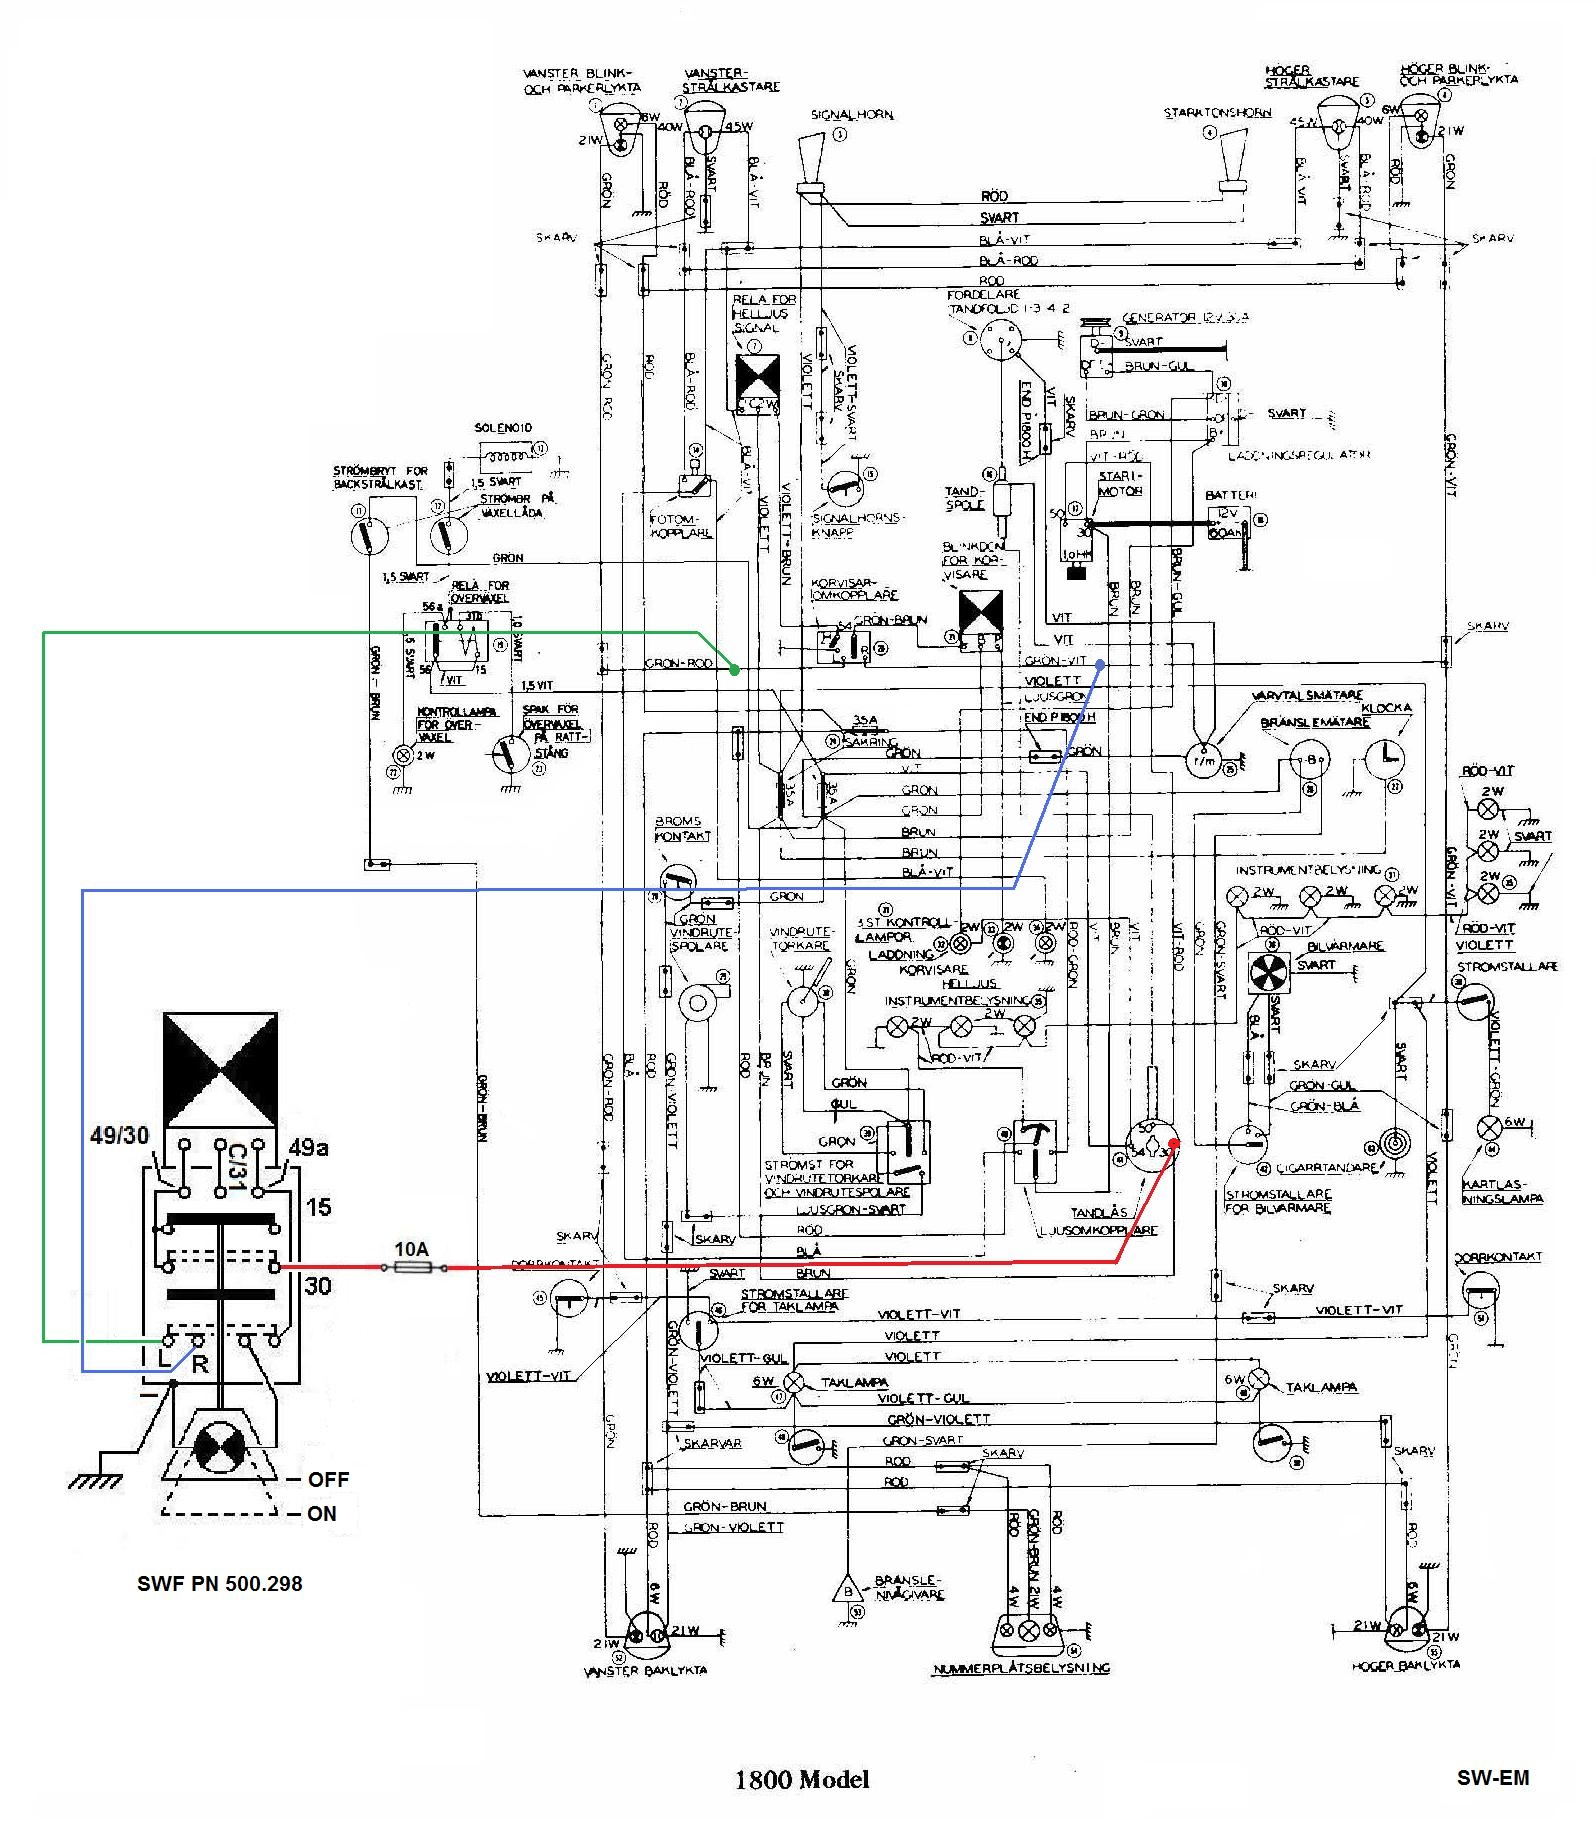 emergency power off switch wiring diagram   41 wiring diagram images